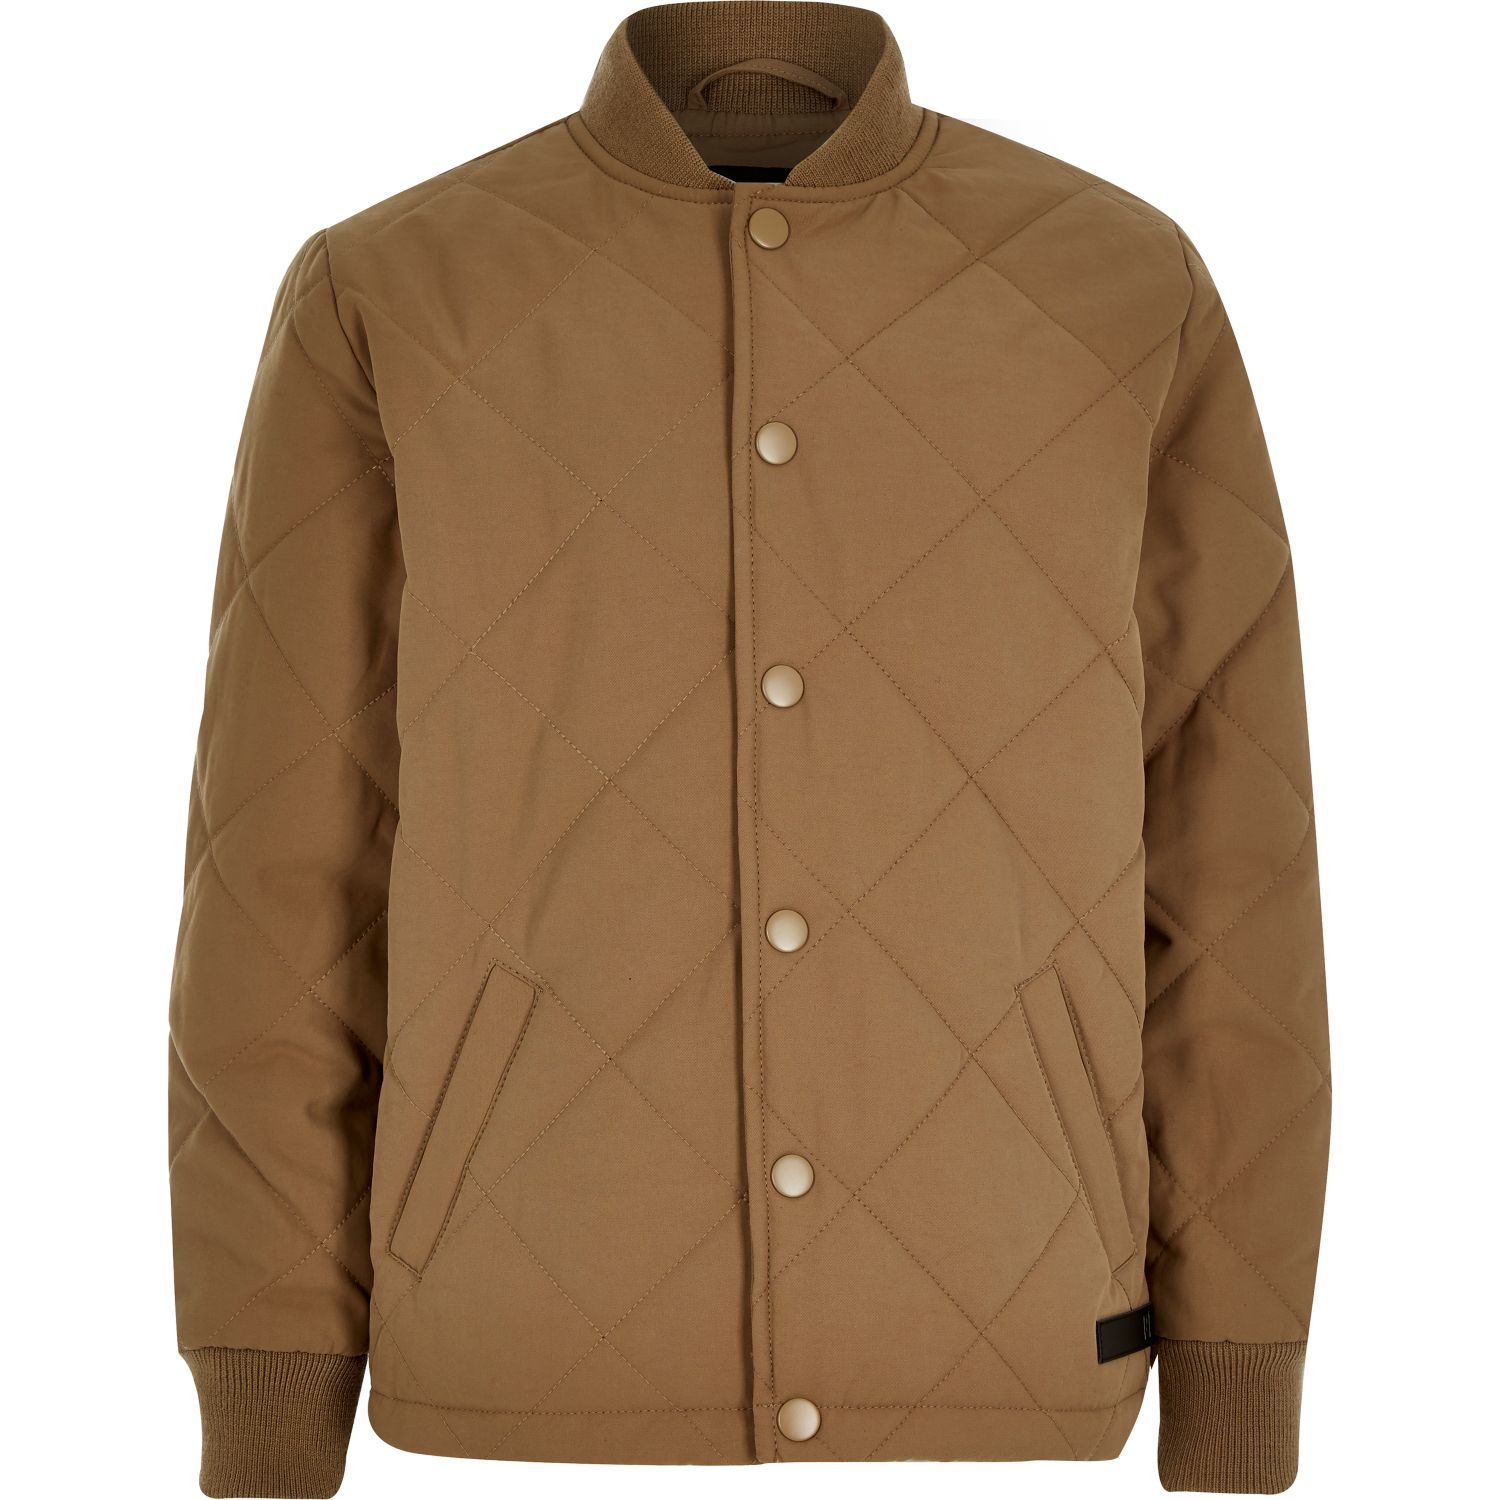 746f61639 River Island Boys Tan Quilted Jacket in Brown - Lyst